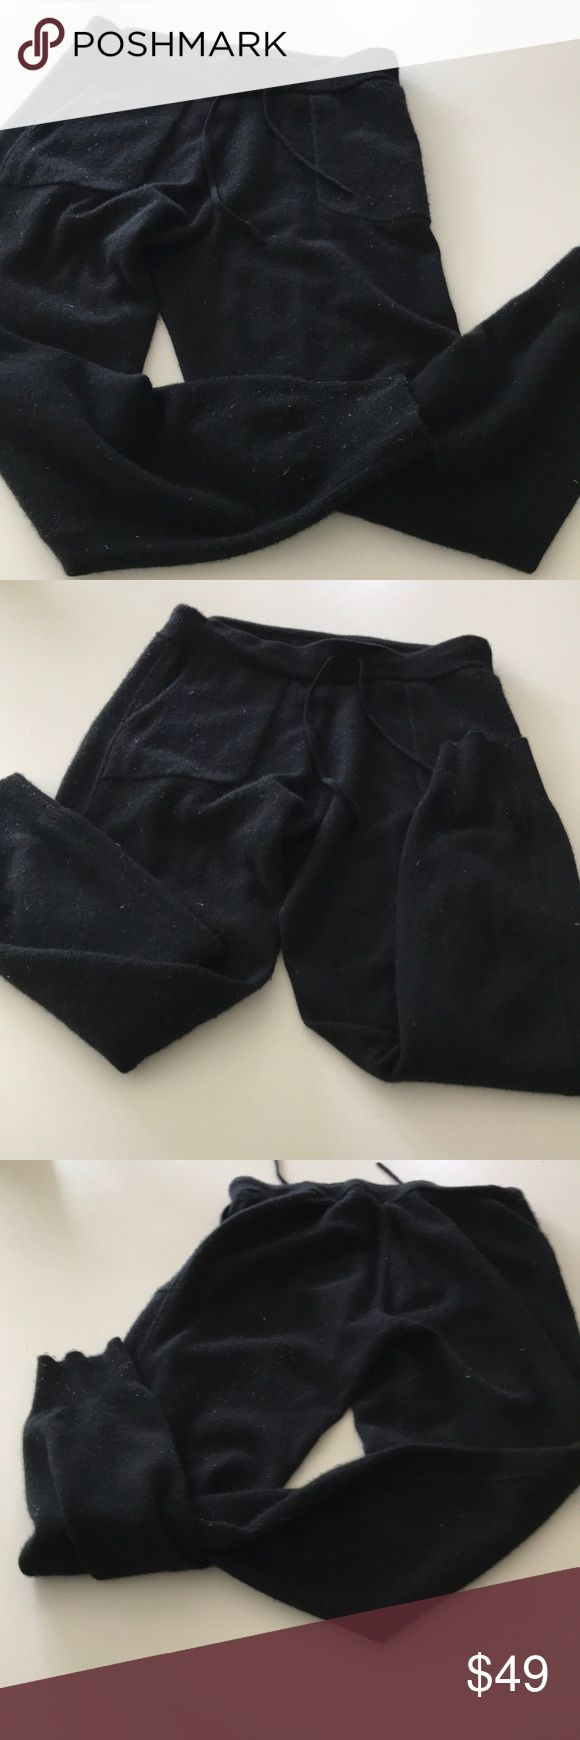 Theory xs cashmere leggings Cashmere black leggings. Loose leg, draw string, pockets. Fitted bottoms. Yes there is some pilling, which is why the price is low. Theory Pants Leggings